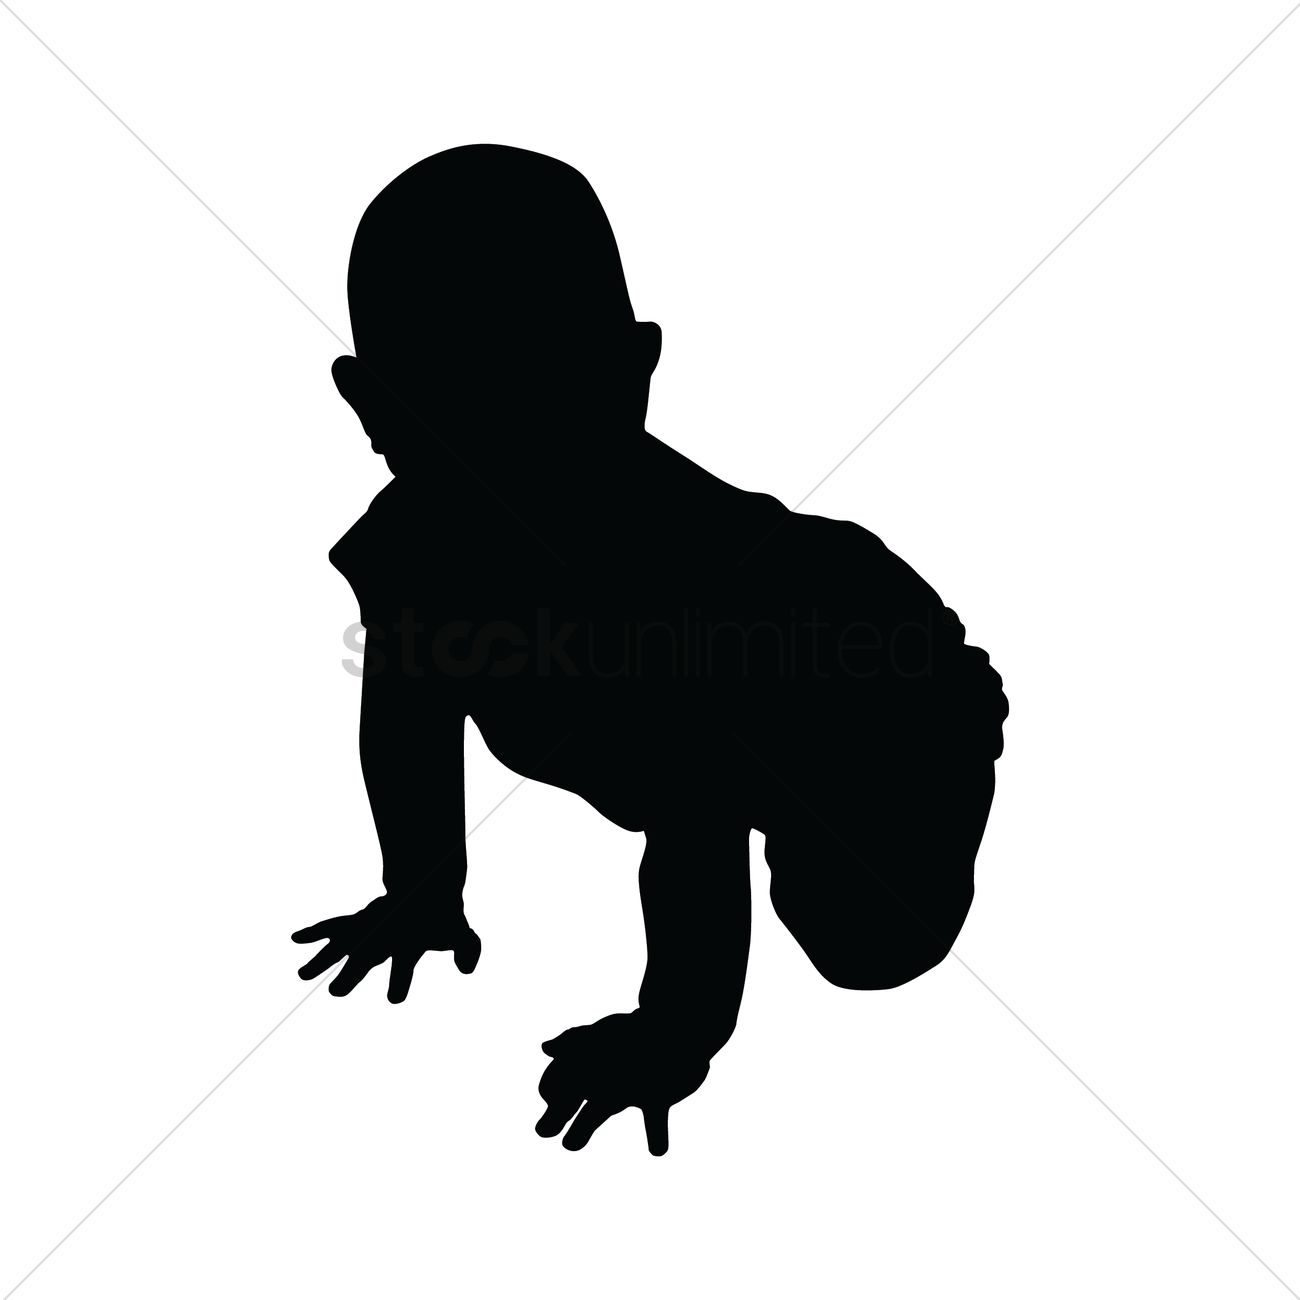 1300x1300 Silhouette Of Baby Crawling Vector Image